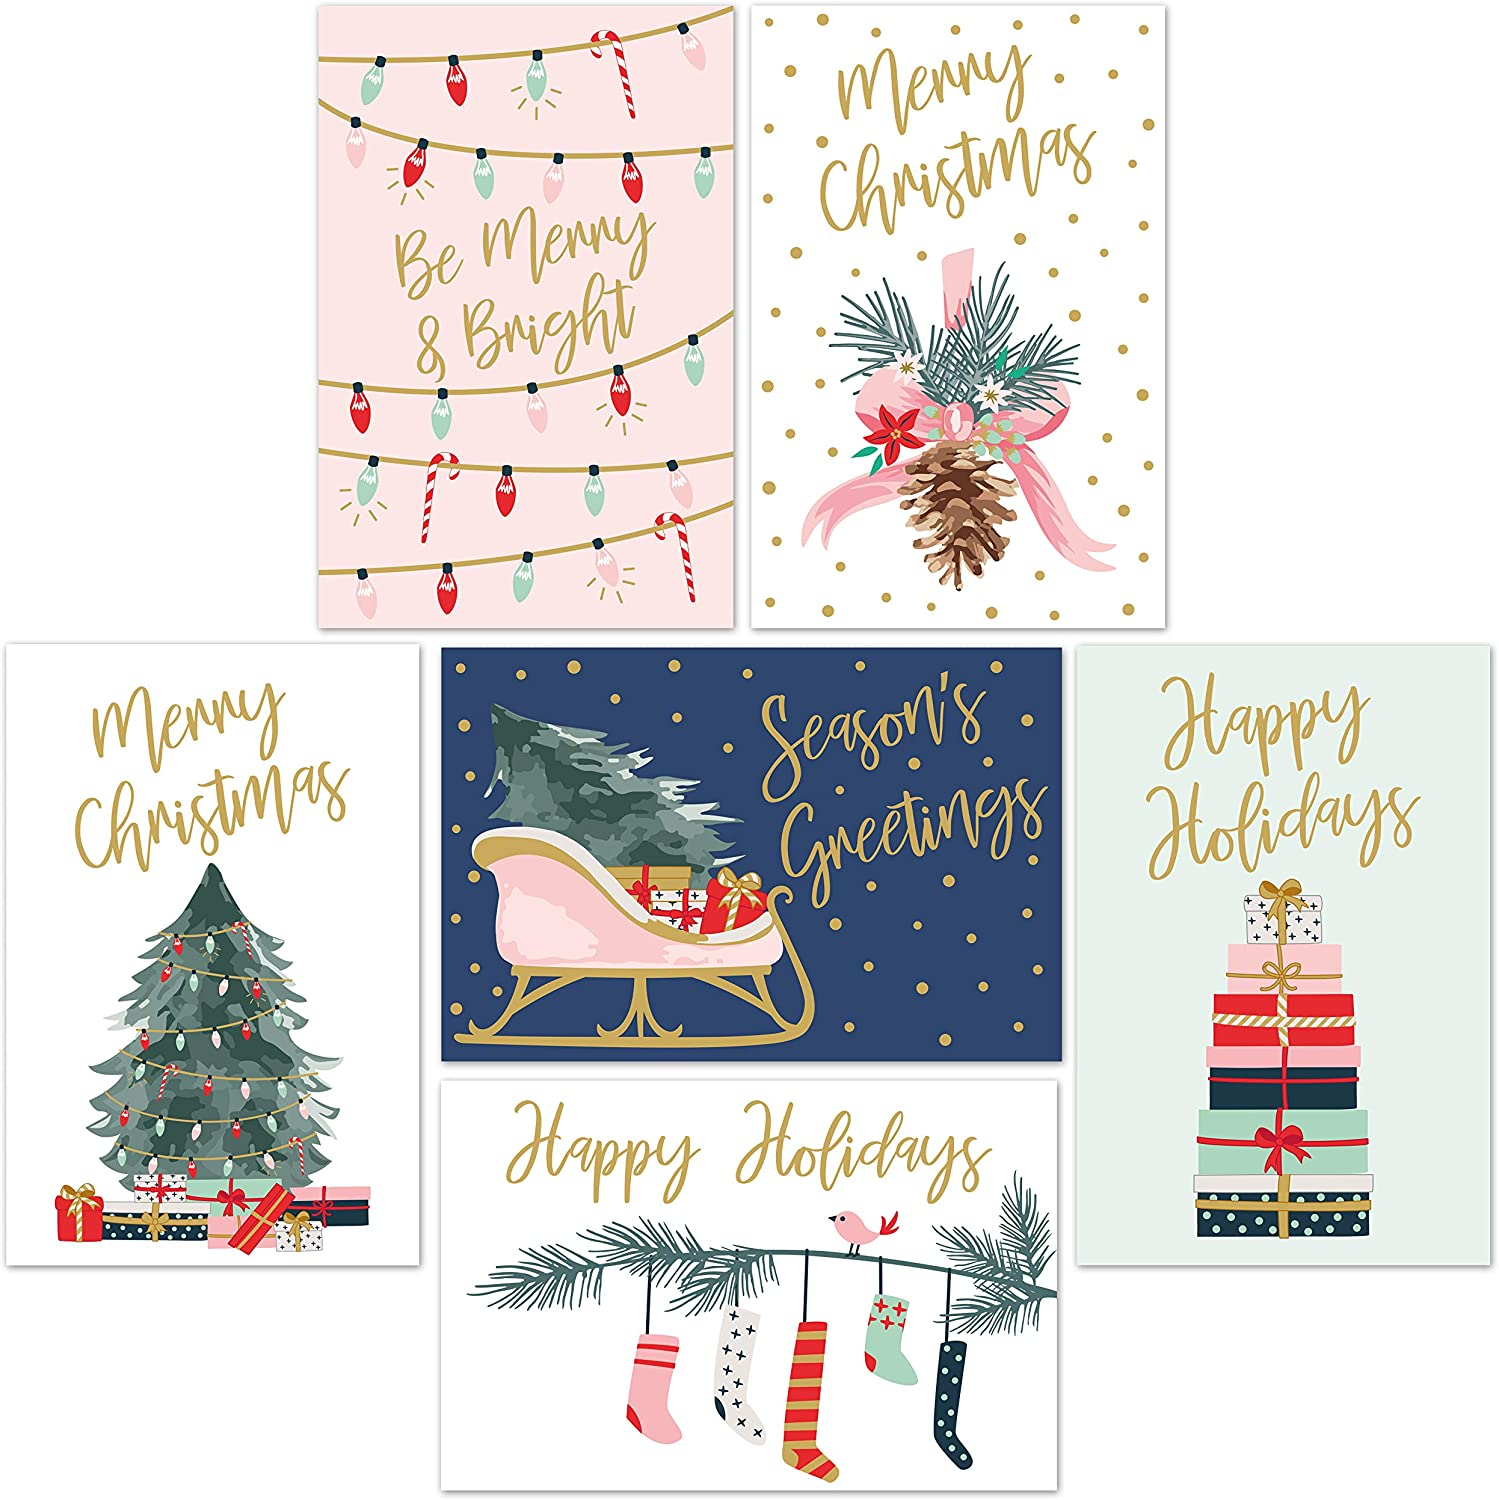 amazon com christmas cards set 24 gold foil holiday cards with red envelopes 6 assorted designs featuring traditional yuletide images bulk greeting and new years cards 4 25 x5 75 office products christmas cards set 24 gold foil holiday cards with red envelopes 6 assorted designs featuring traditional yuletide images bulk greeting and new